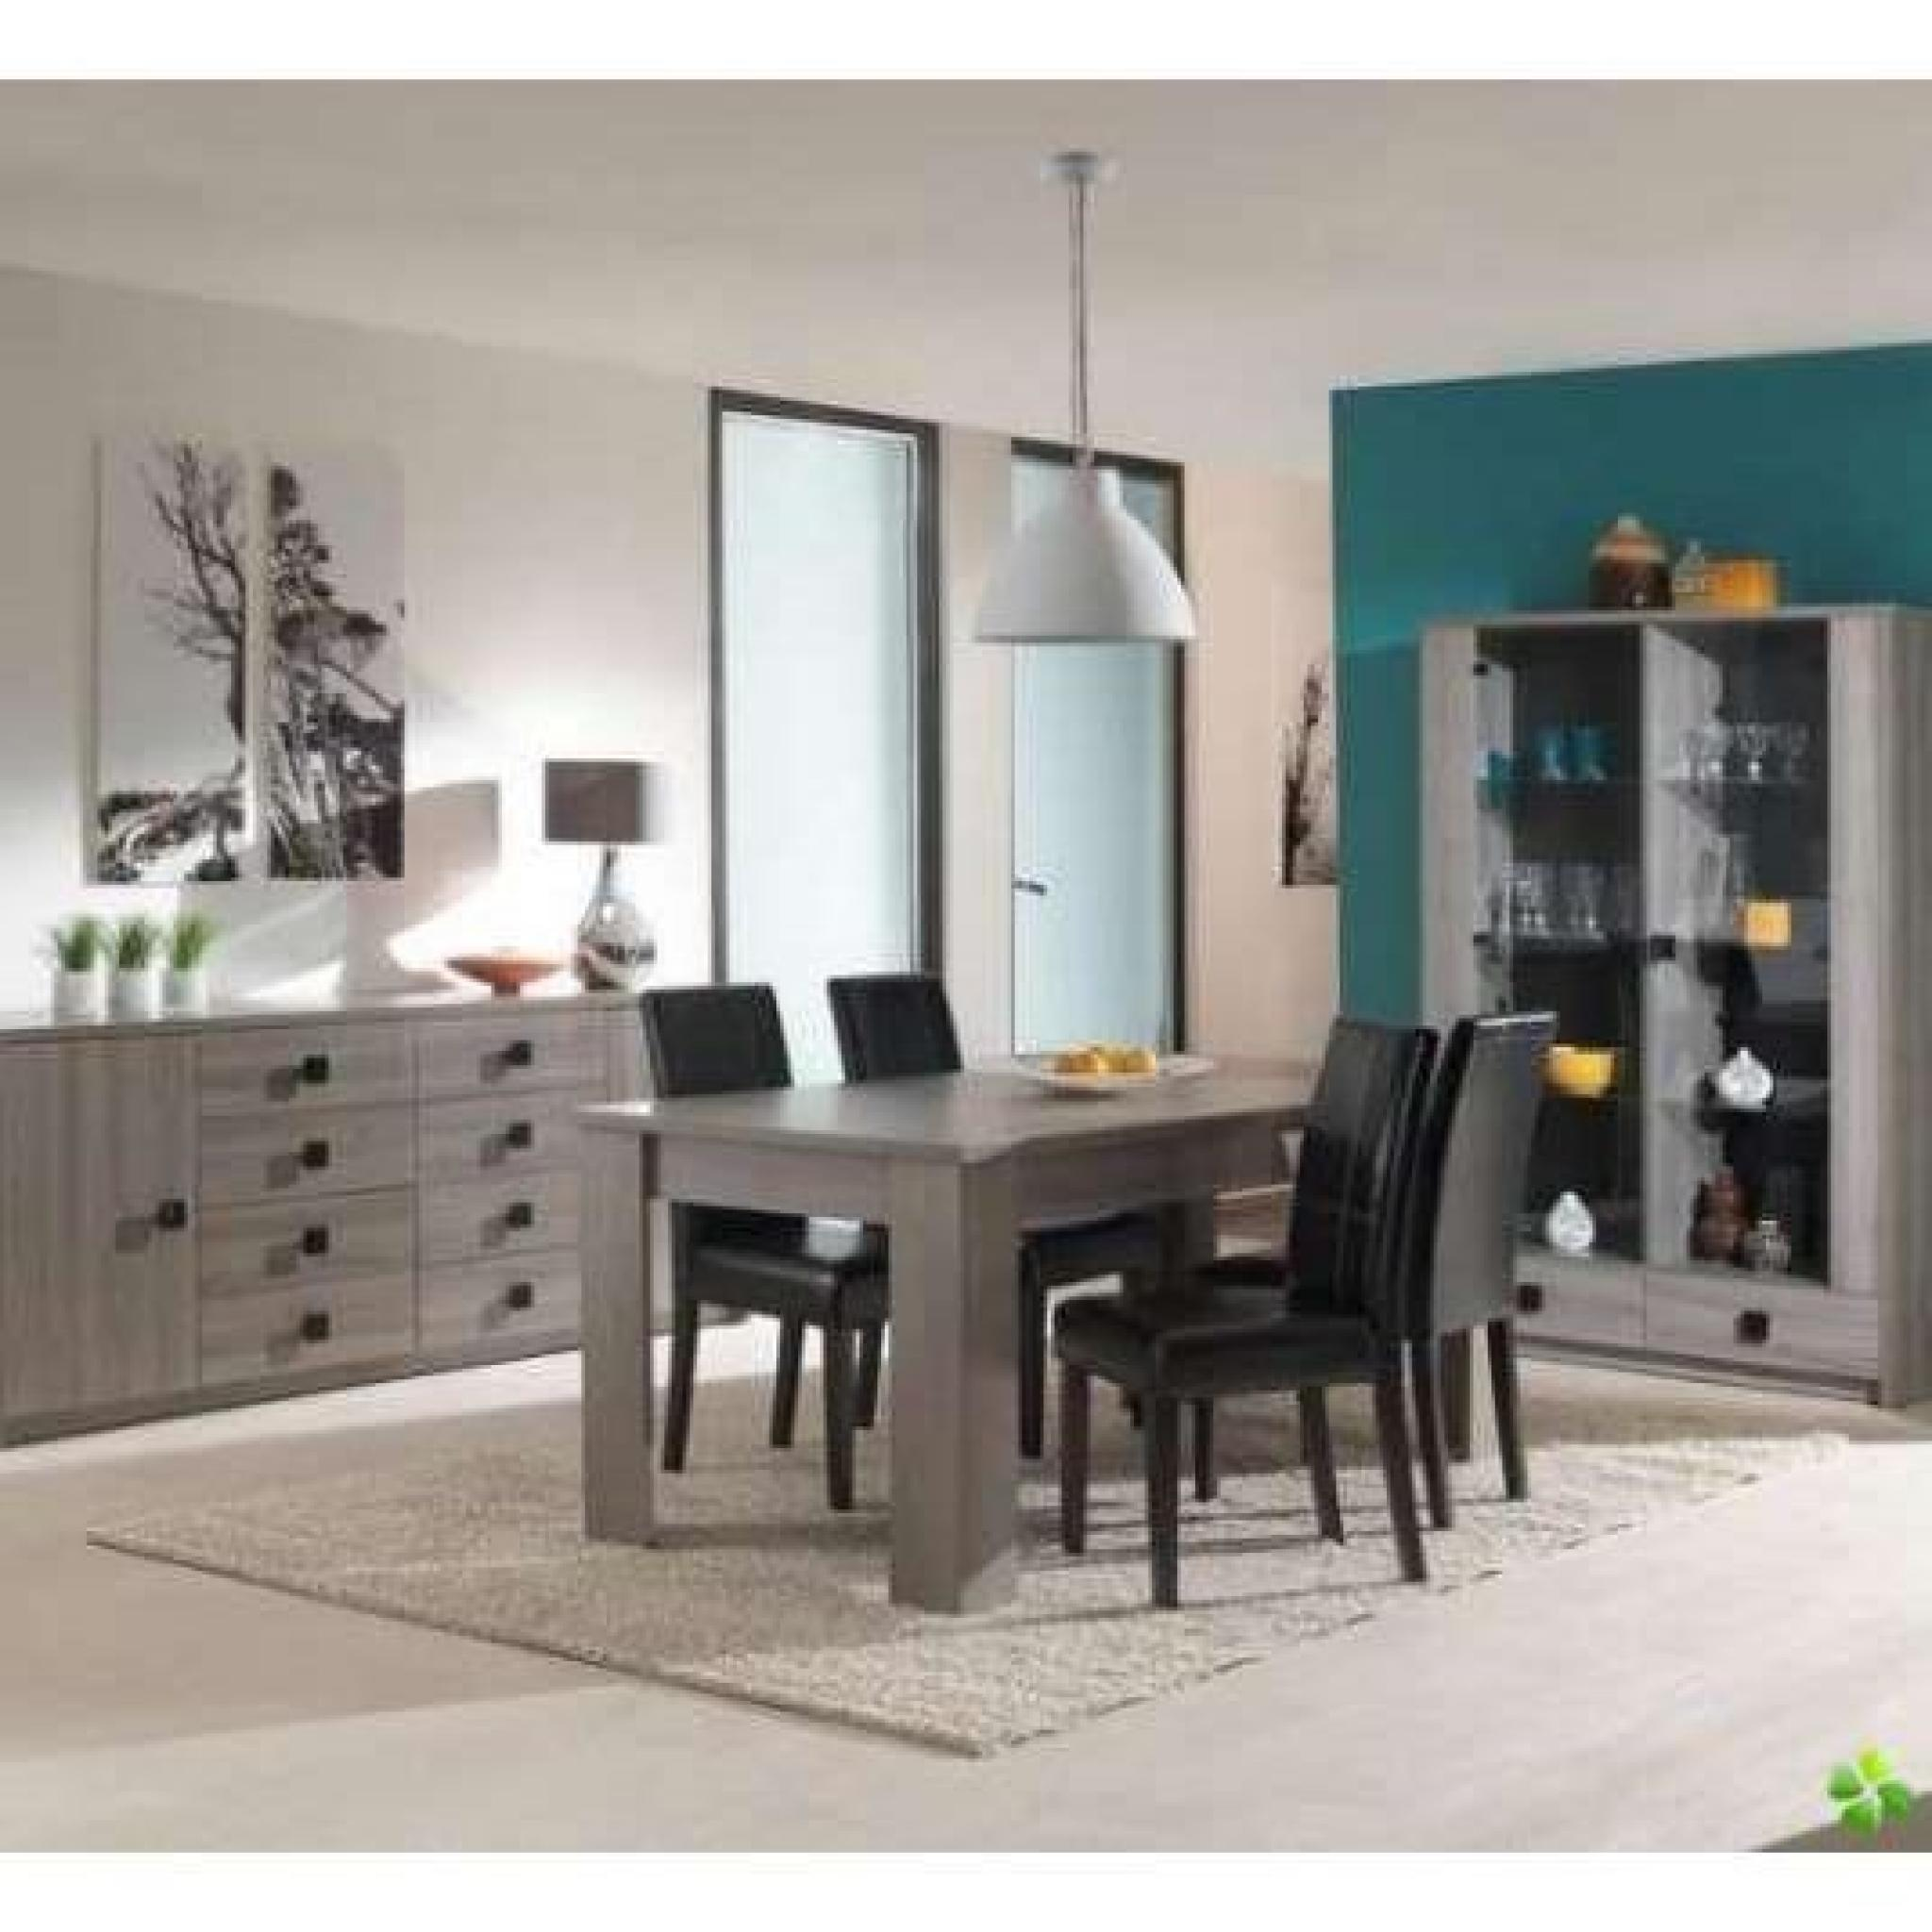 vente salle a manger maison design. Black Bedroom Furniture Sets. Home Design Ideas